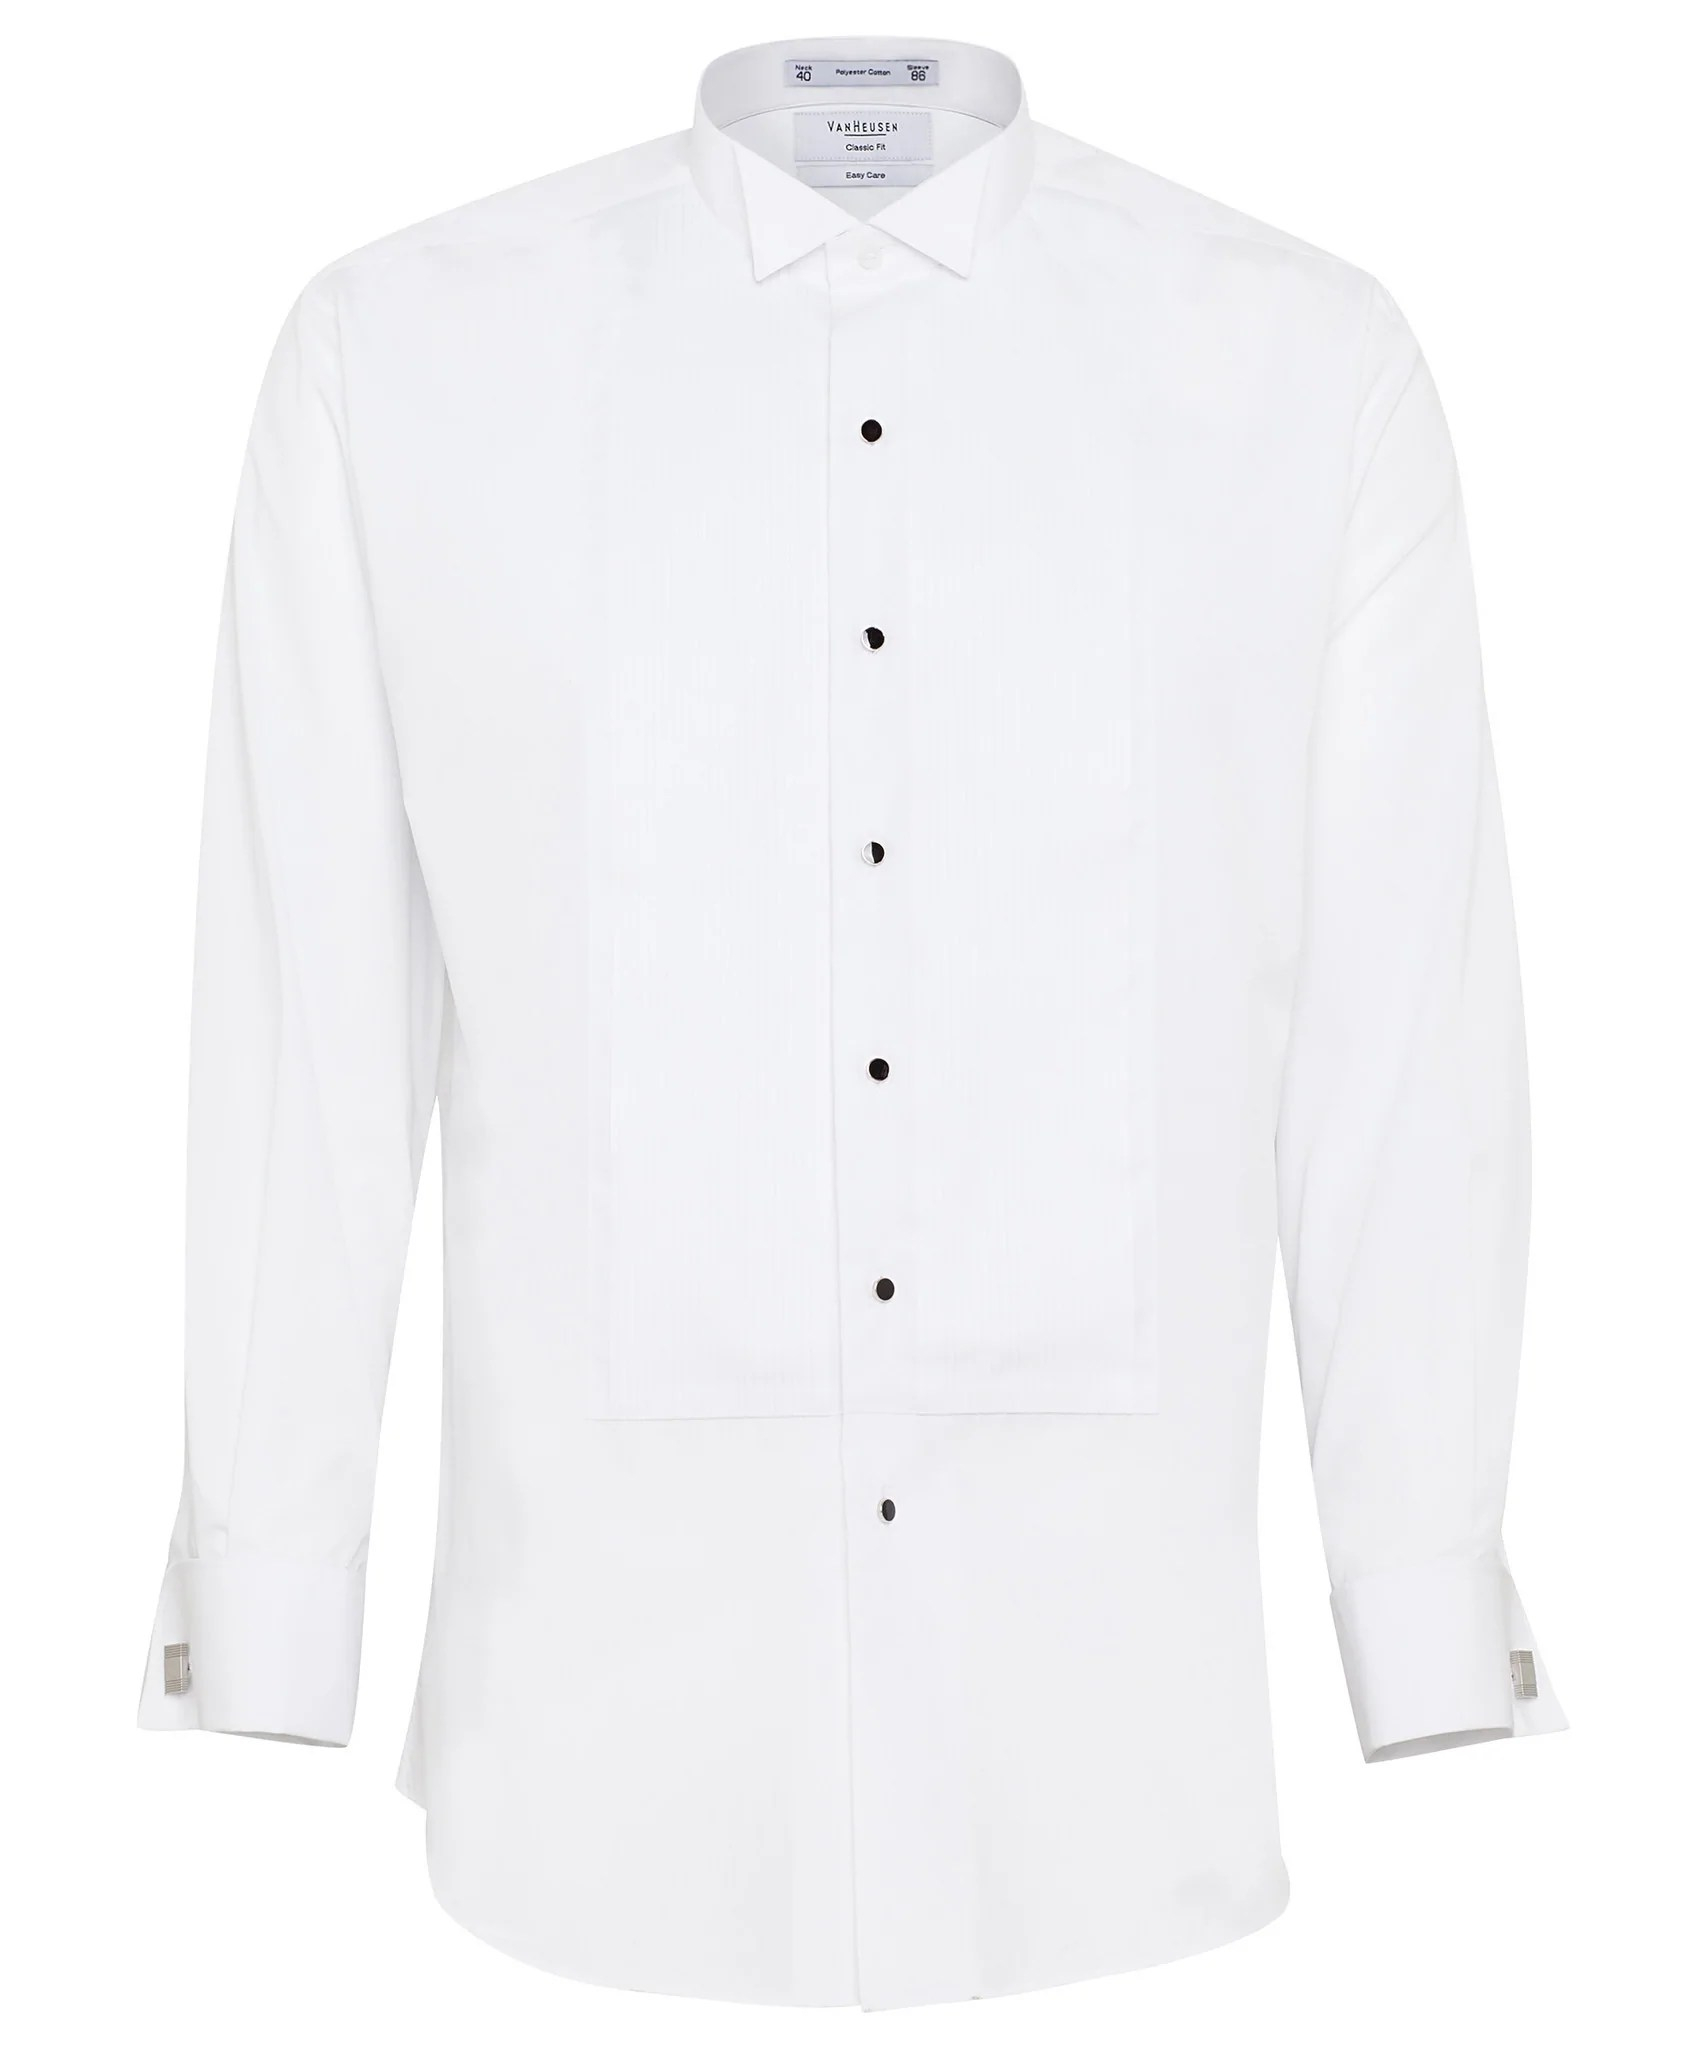 Van heusen gents formal dinner wing collar pleated front classic fit shirt also rh corporateapparelonline